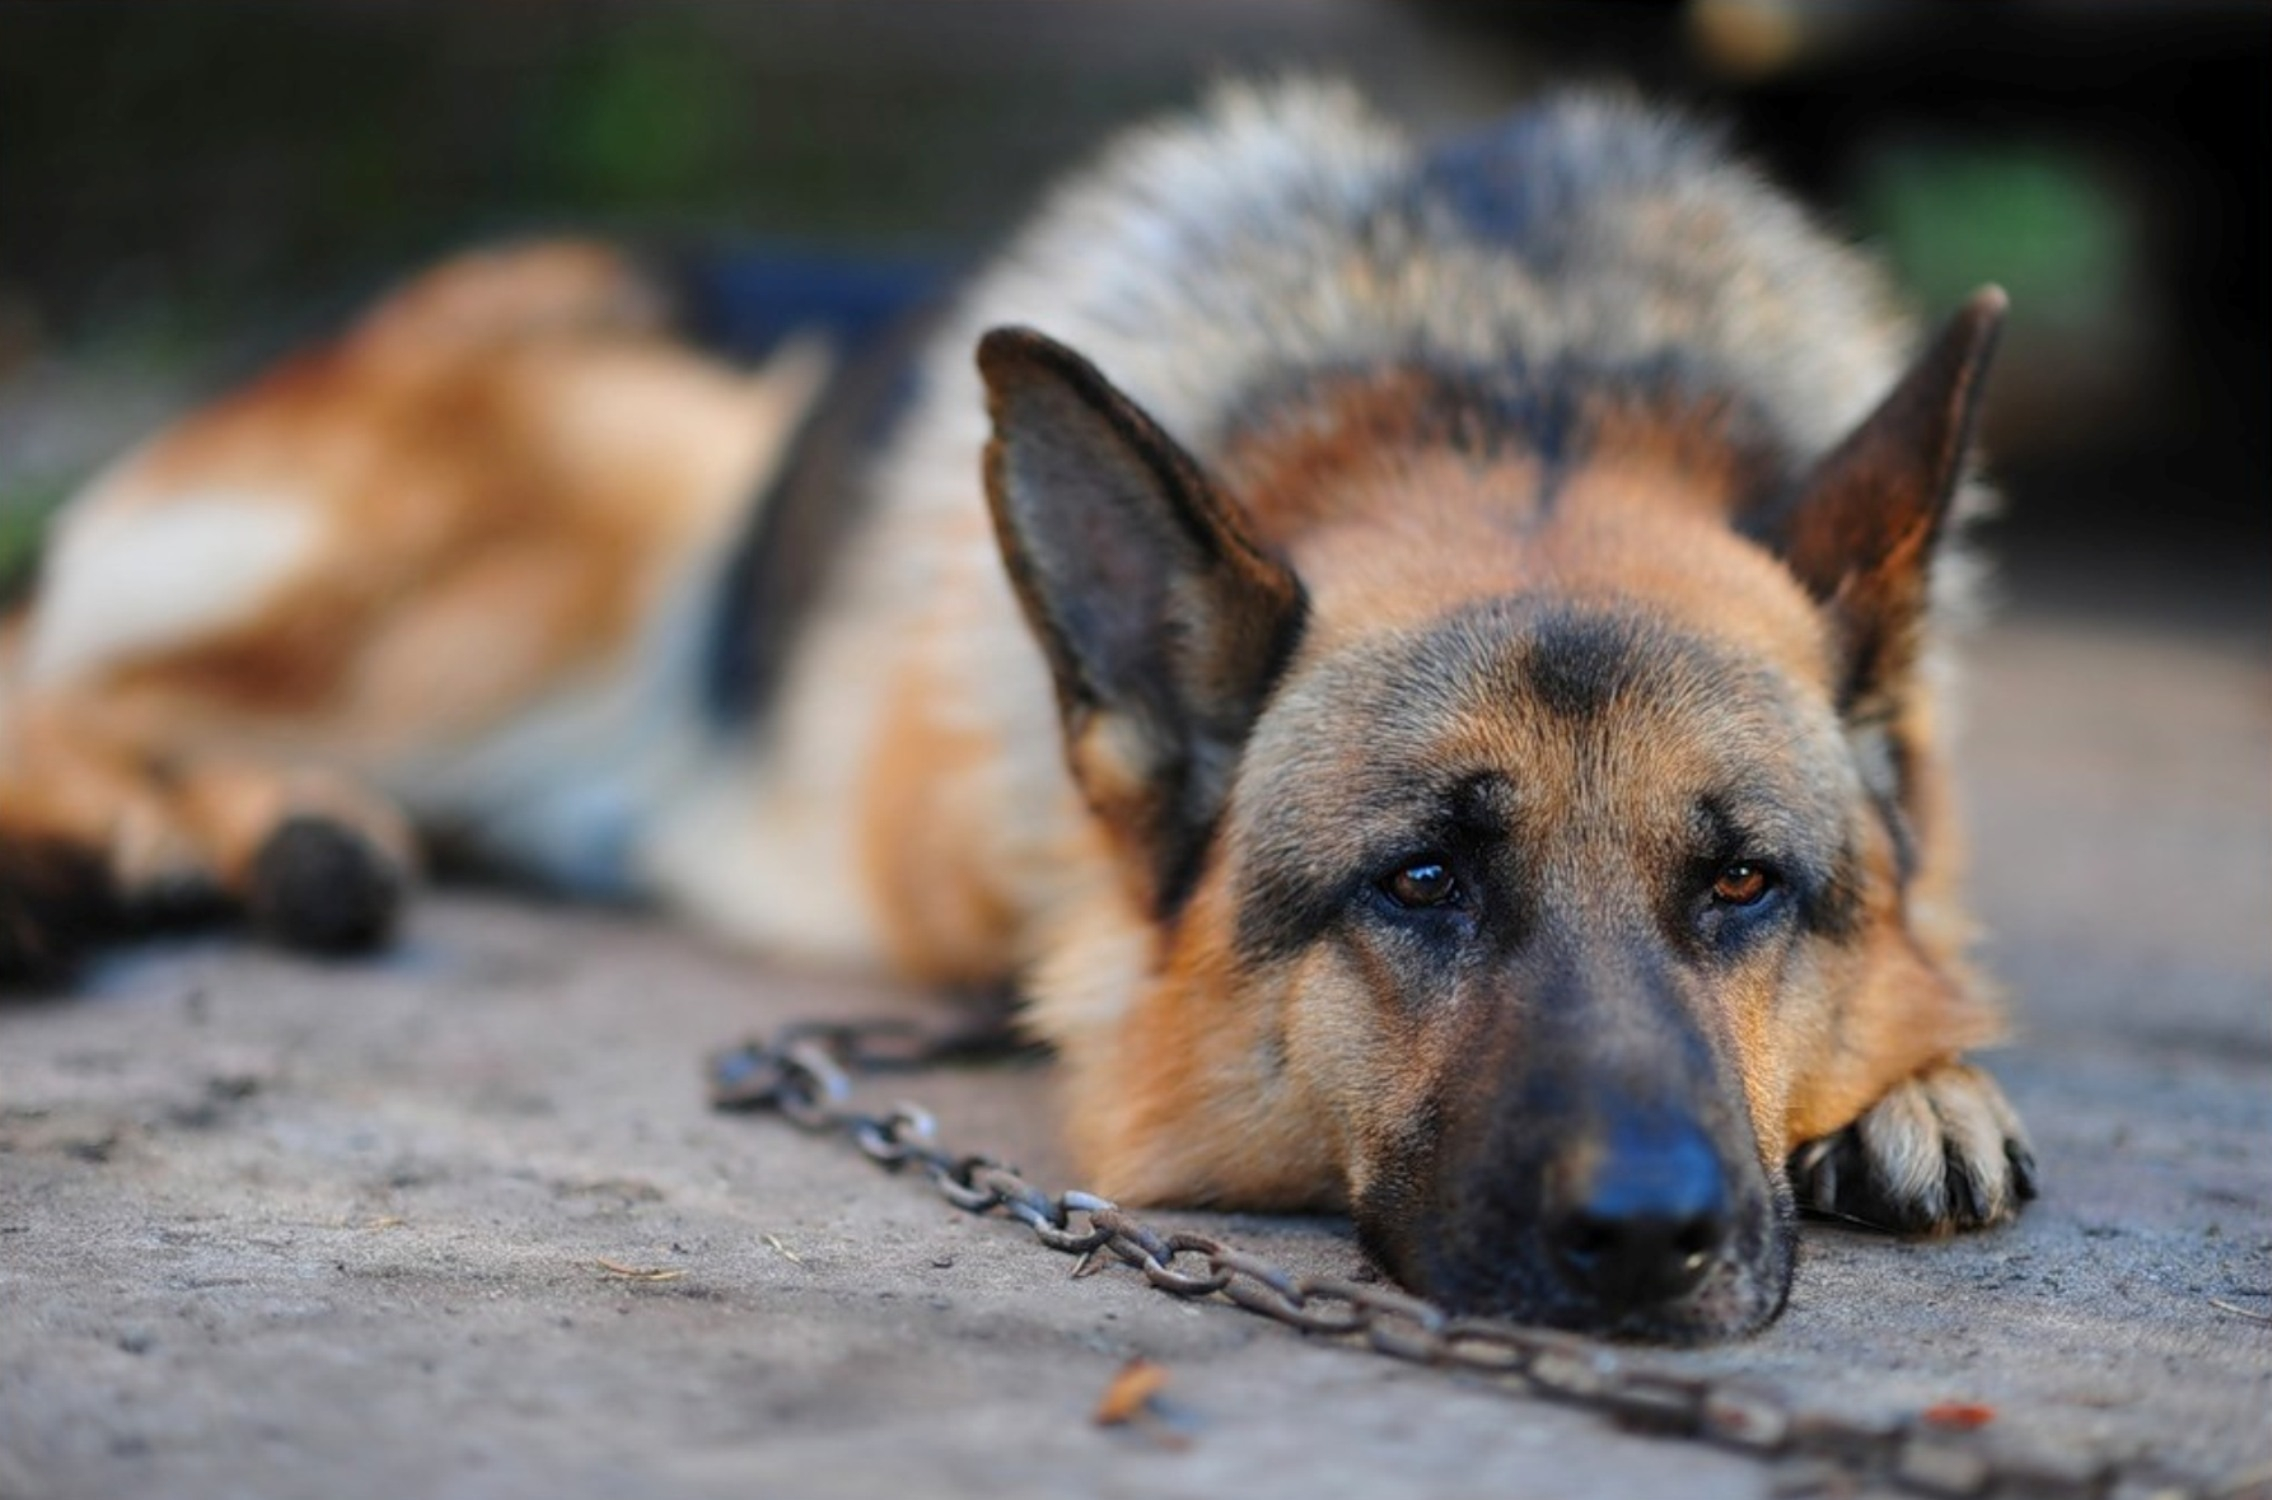 106875 download wallpaper Animals, Dog, German Shepherd, Chain, Relaxation, Rest screensavers and pictures for free